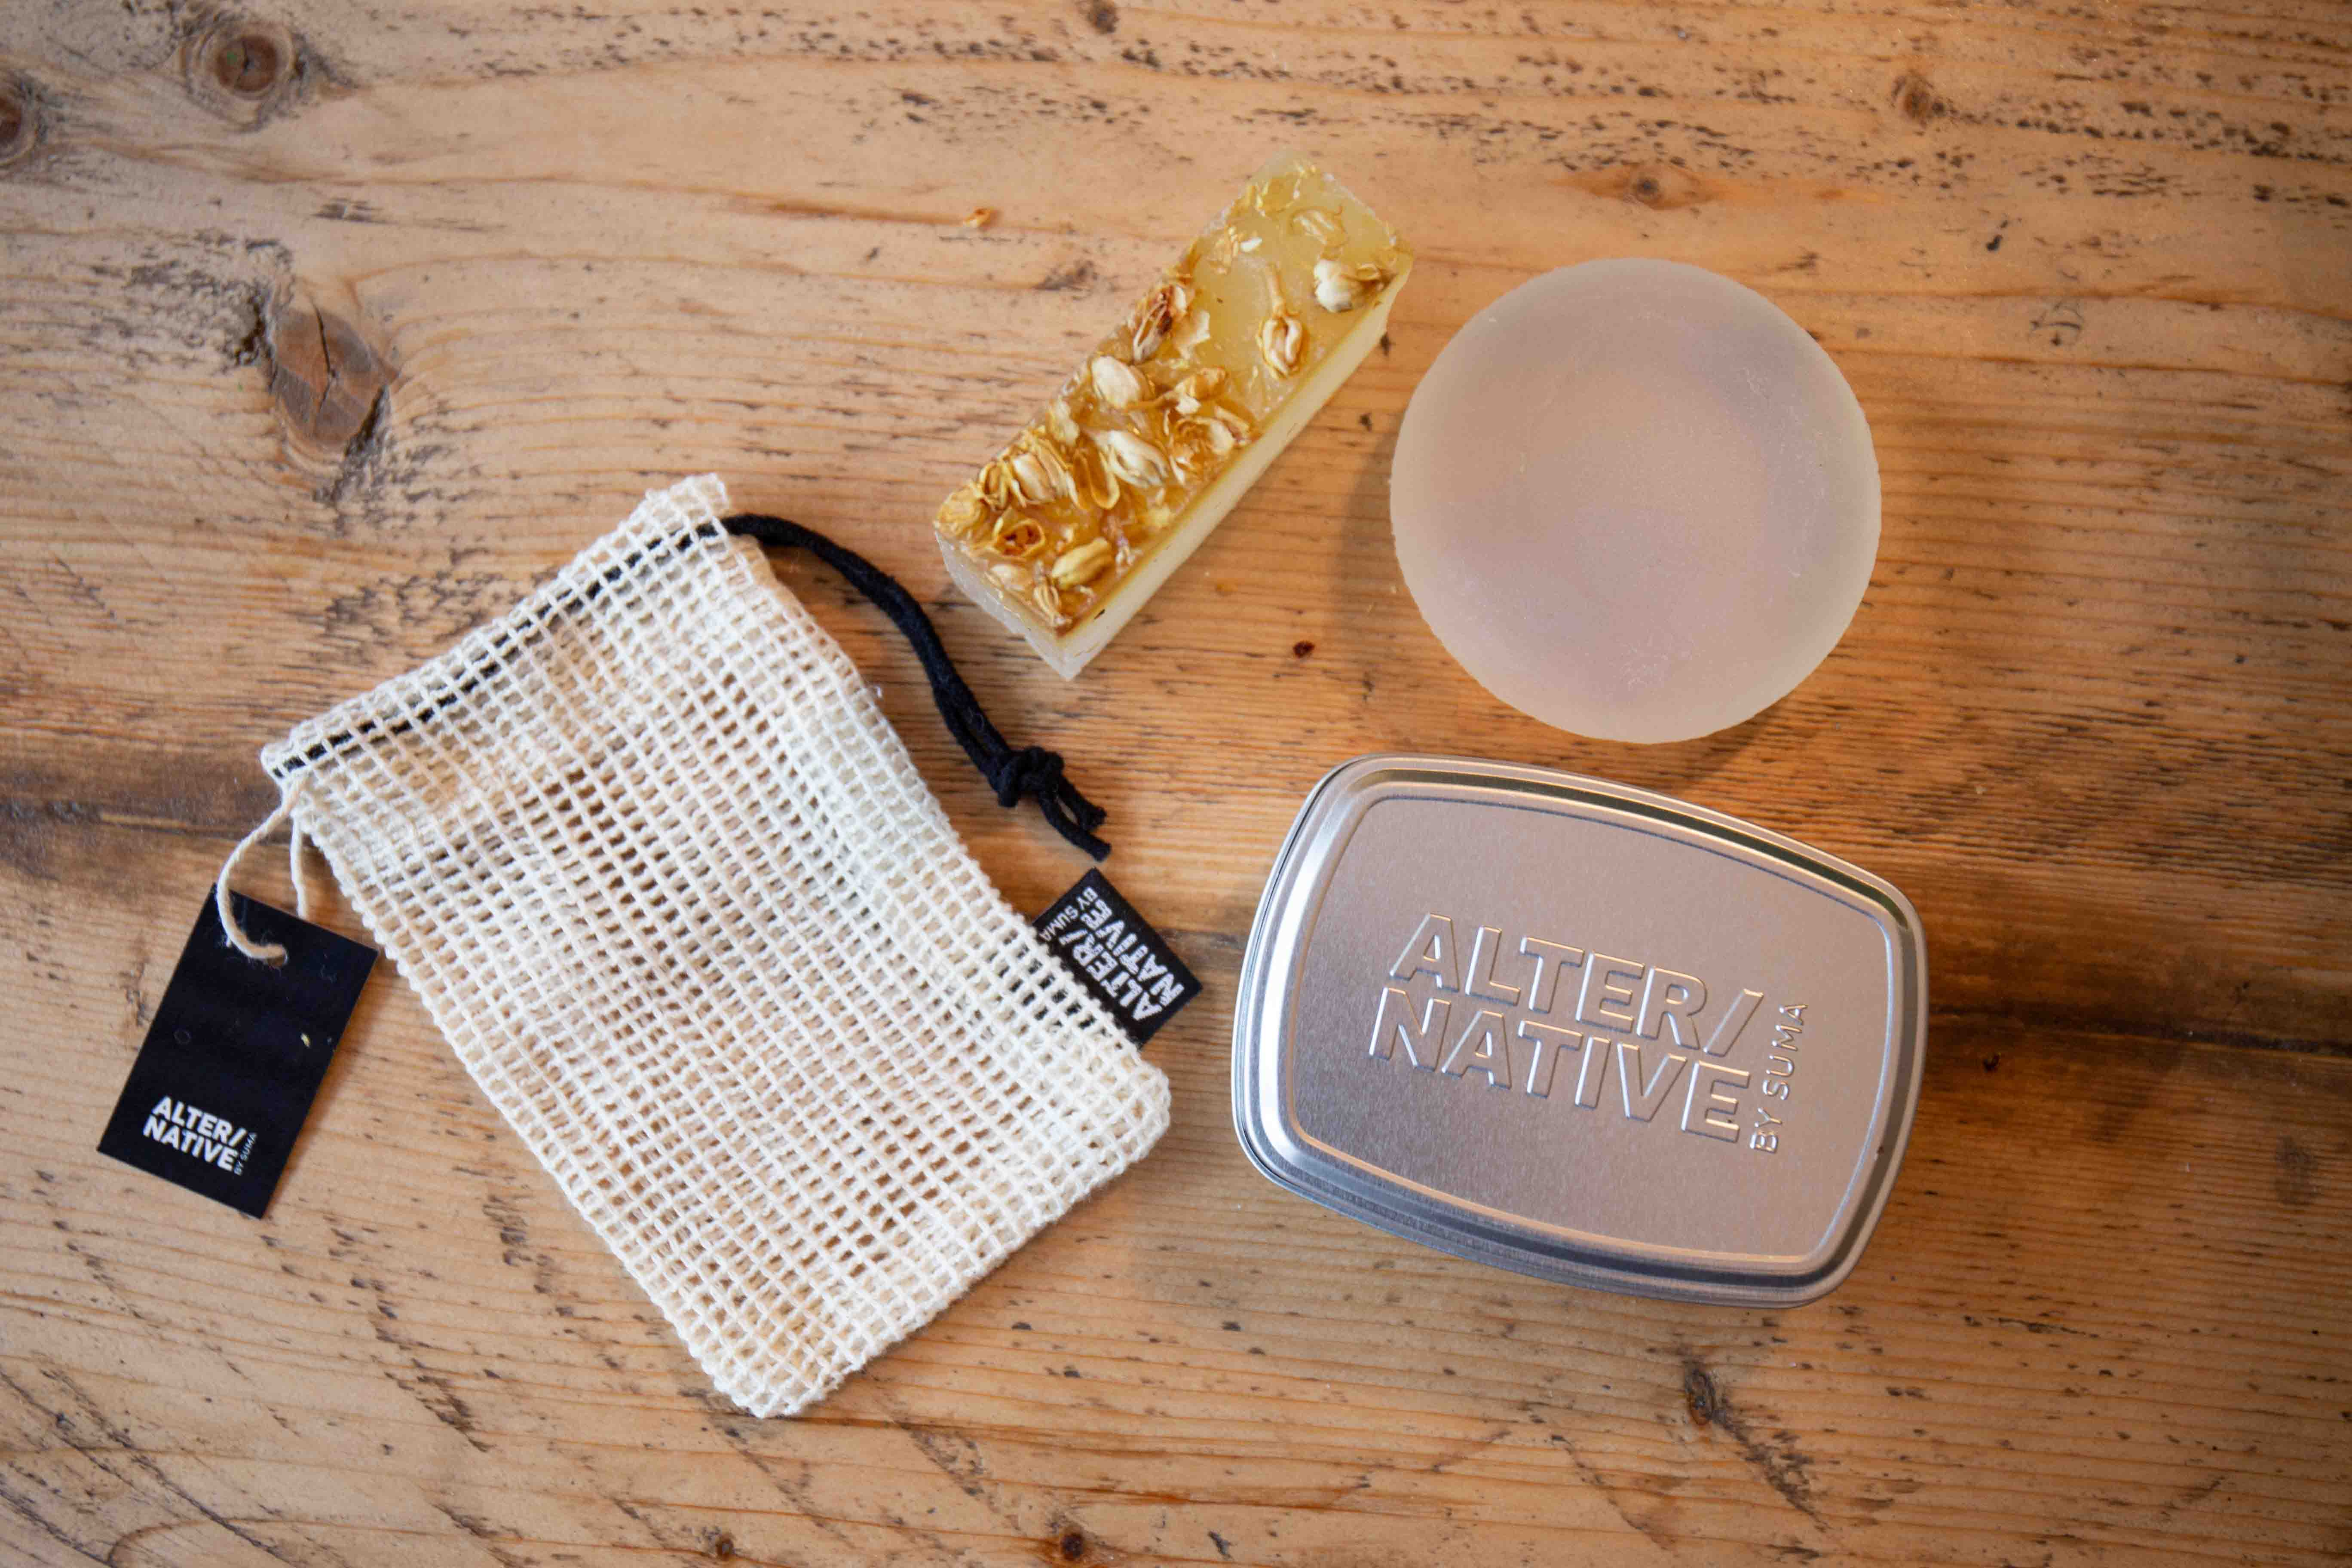 Alter/native Gift Set / 1 x Square & 1 x Round Soap Bar, Tin & Bag